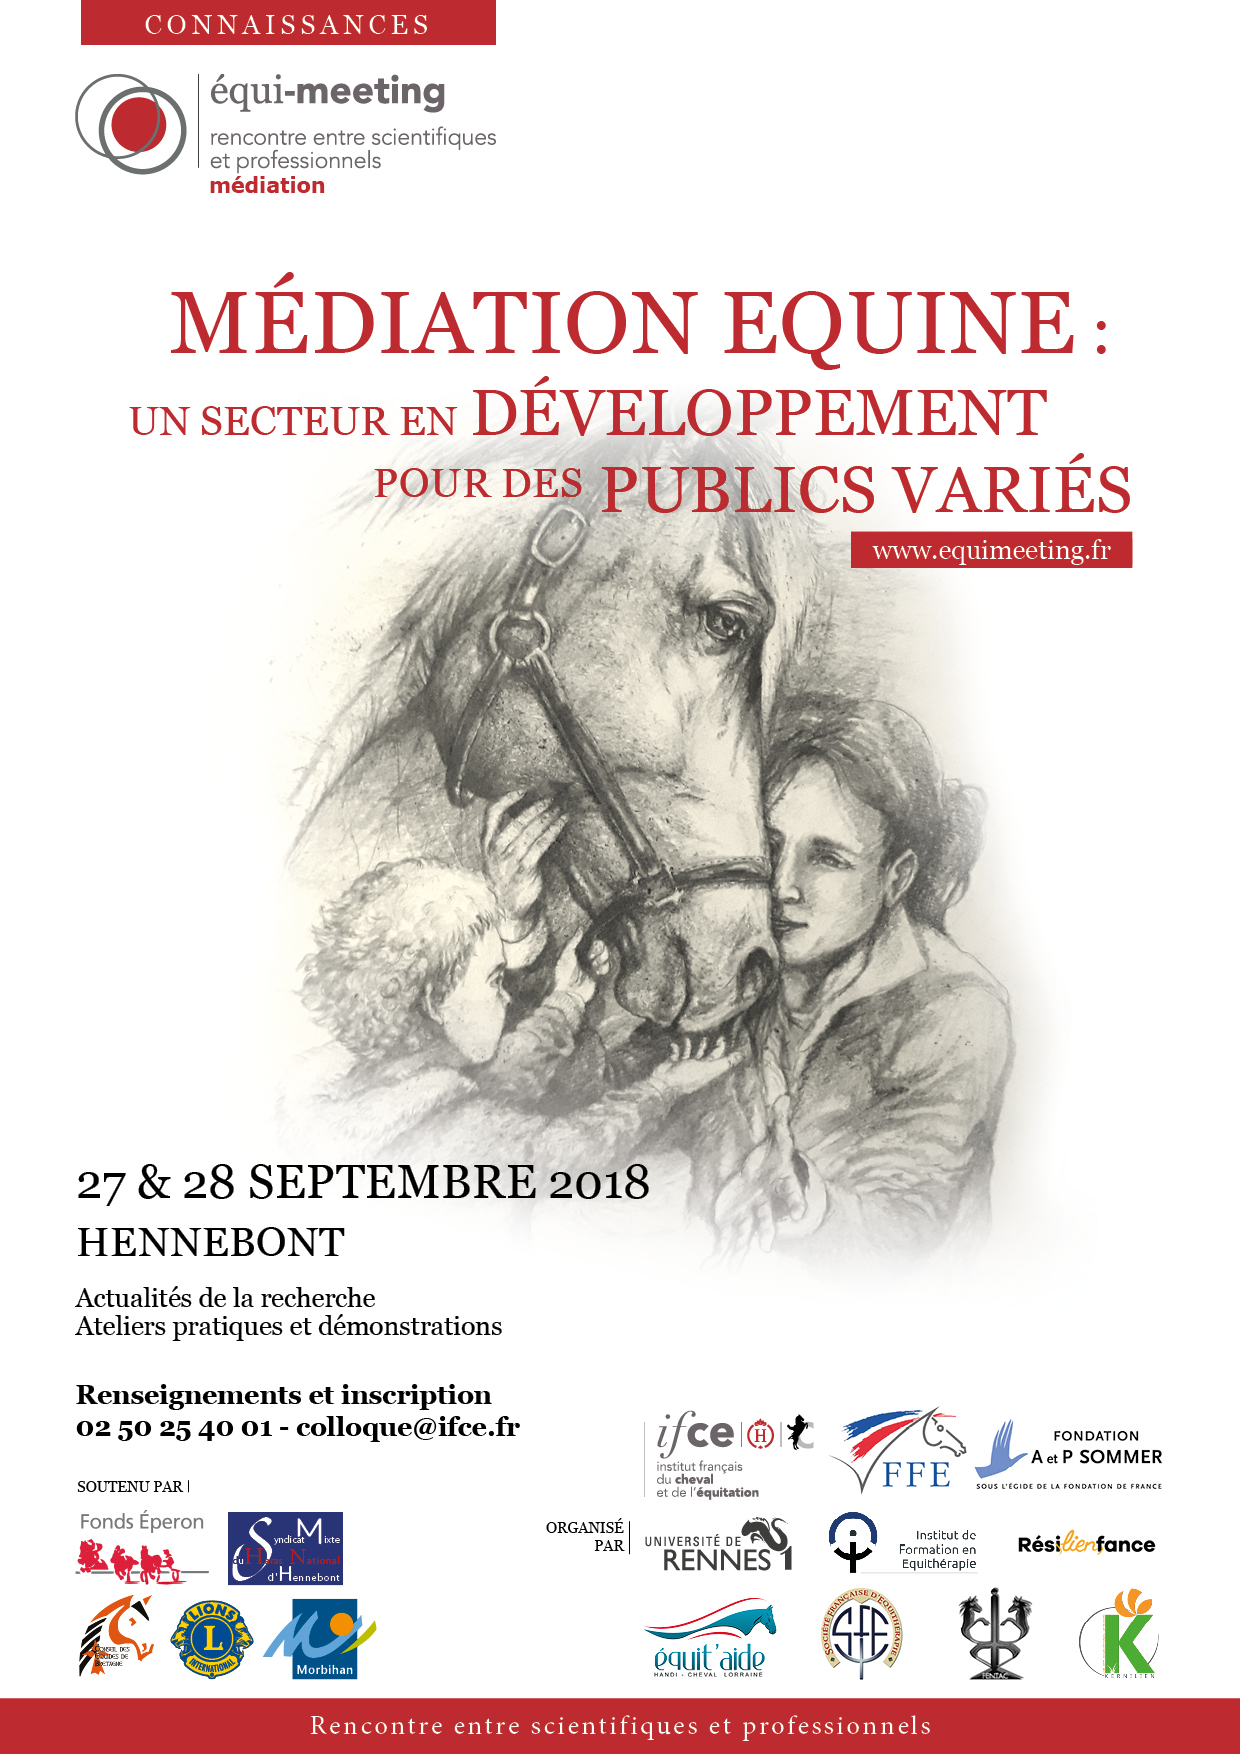 DIF Affiche Equimeeting médiation 2018